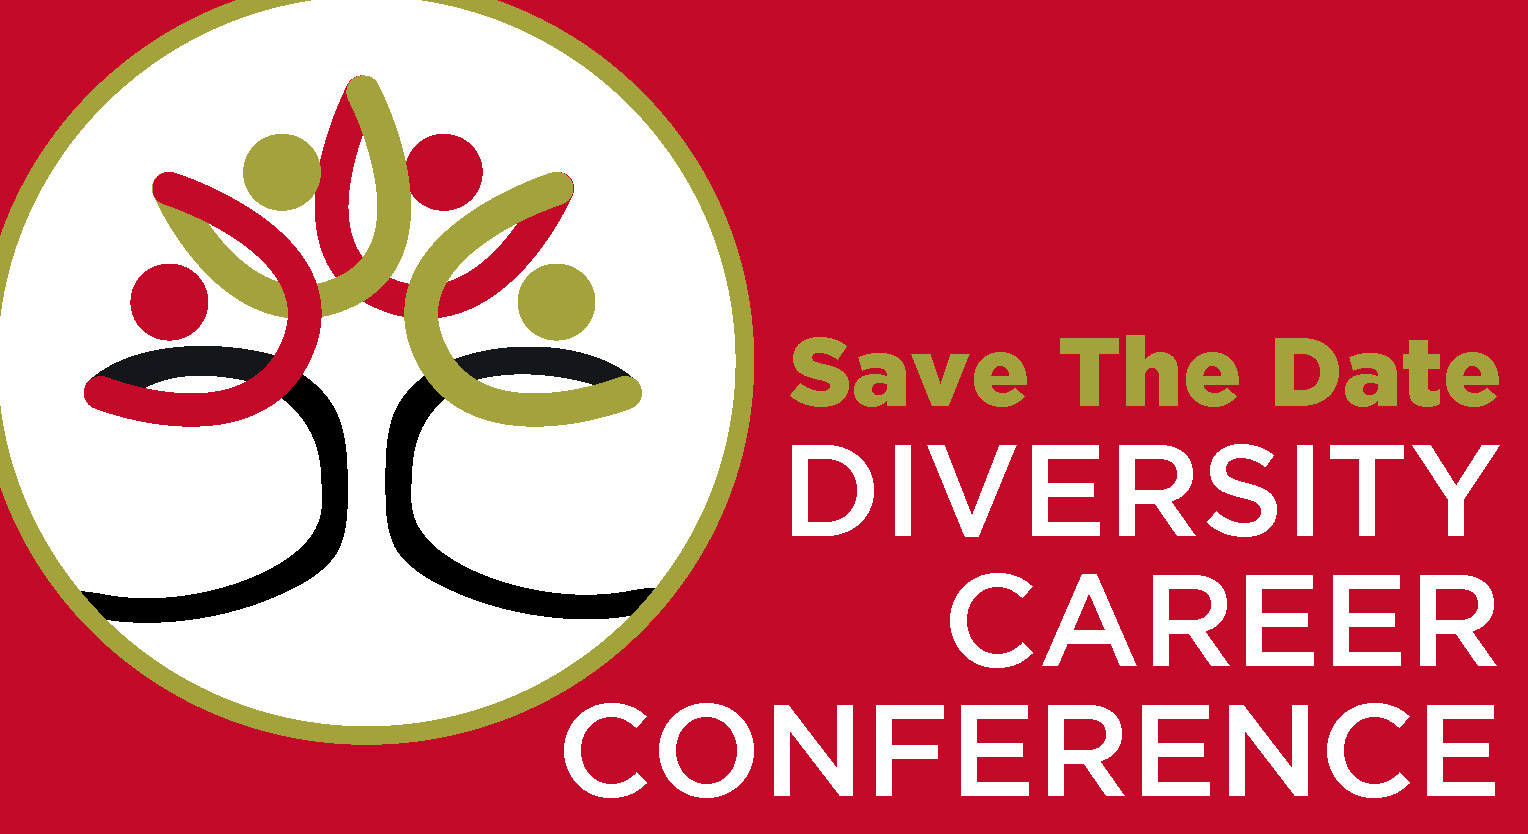 Diversity Career Conference